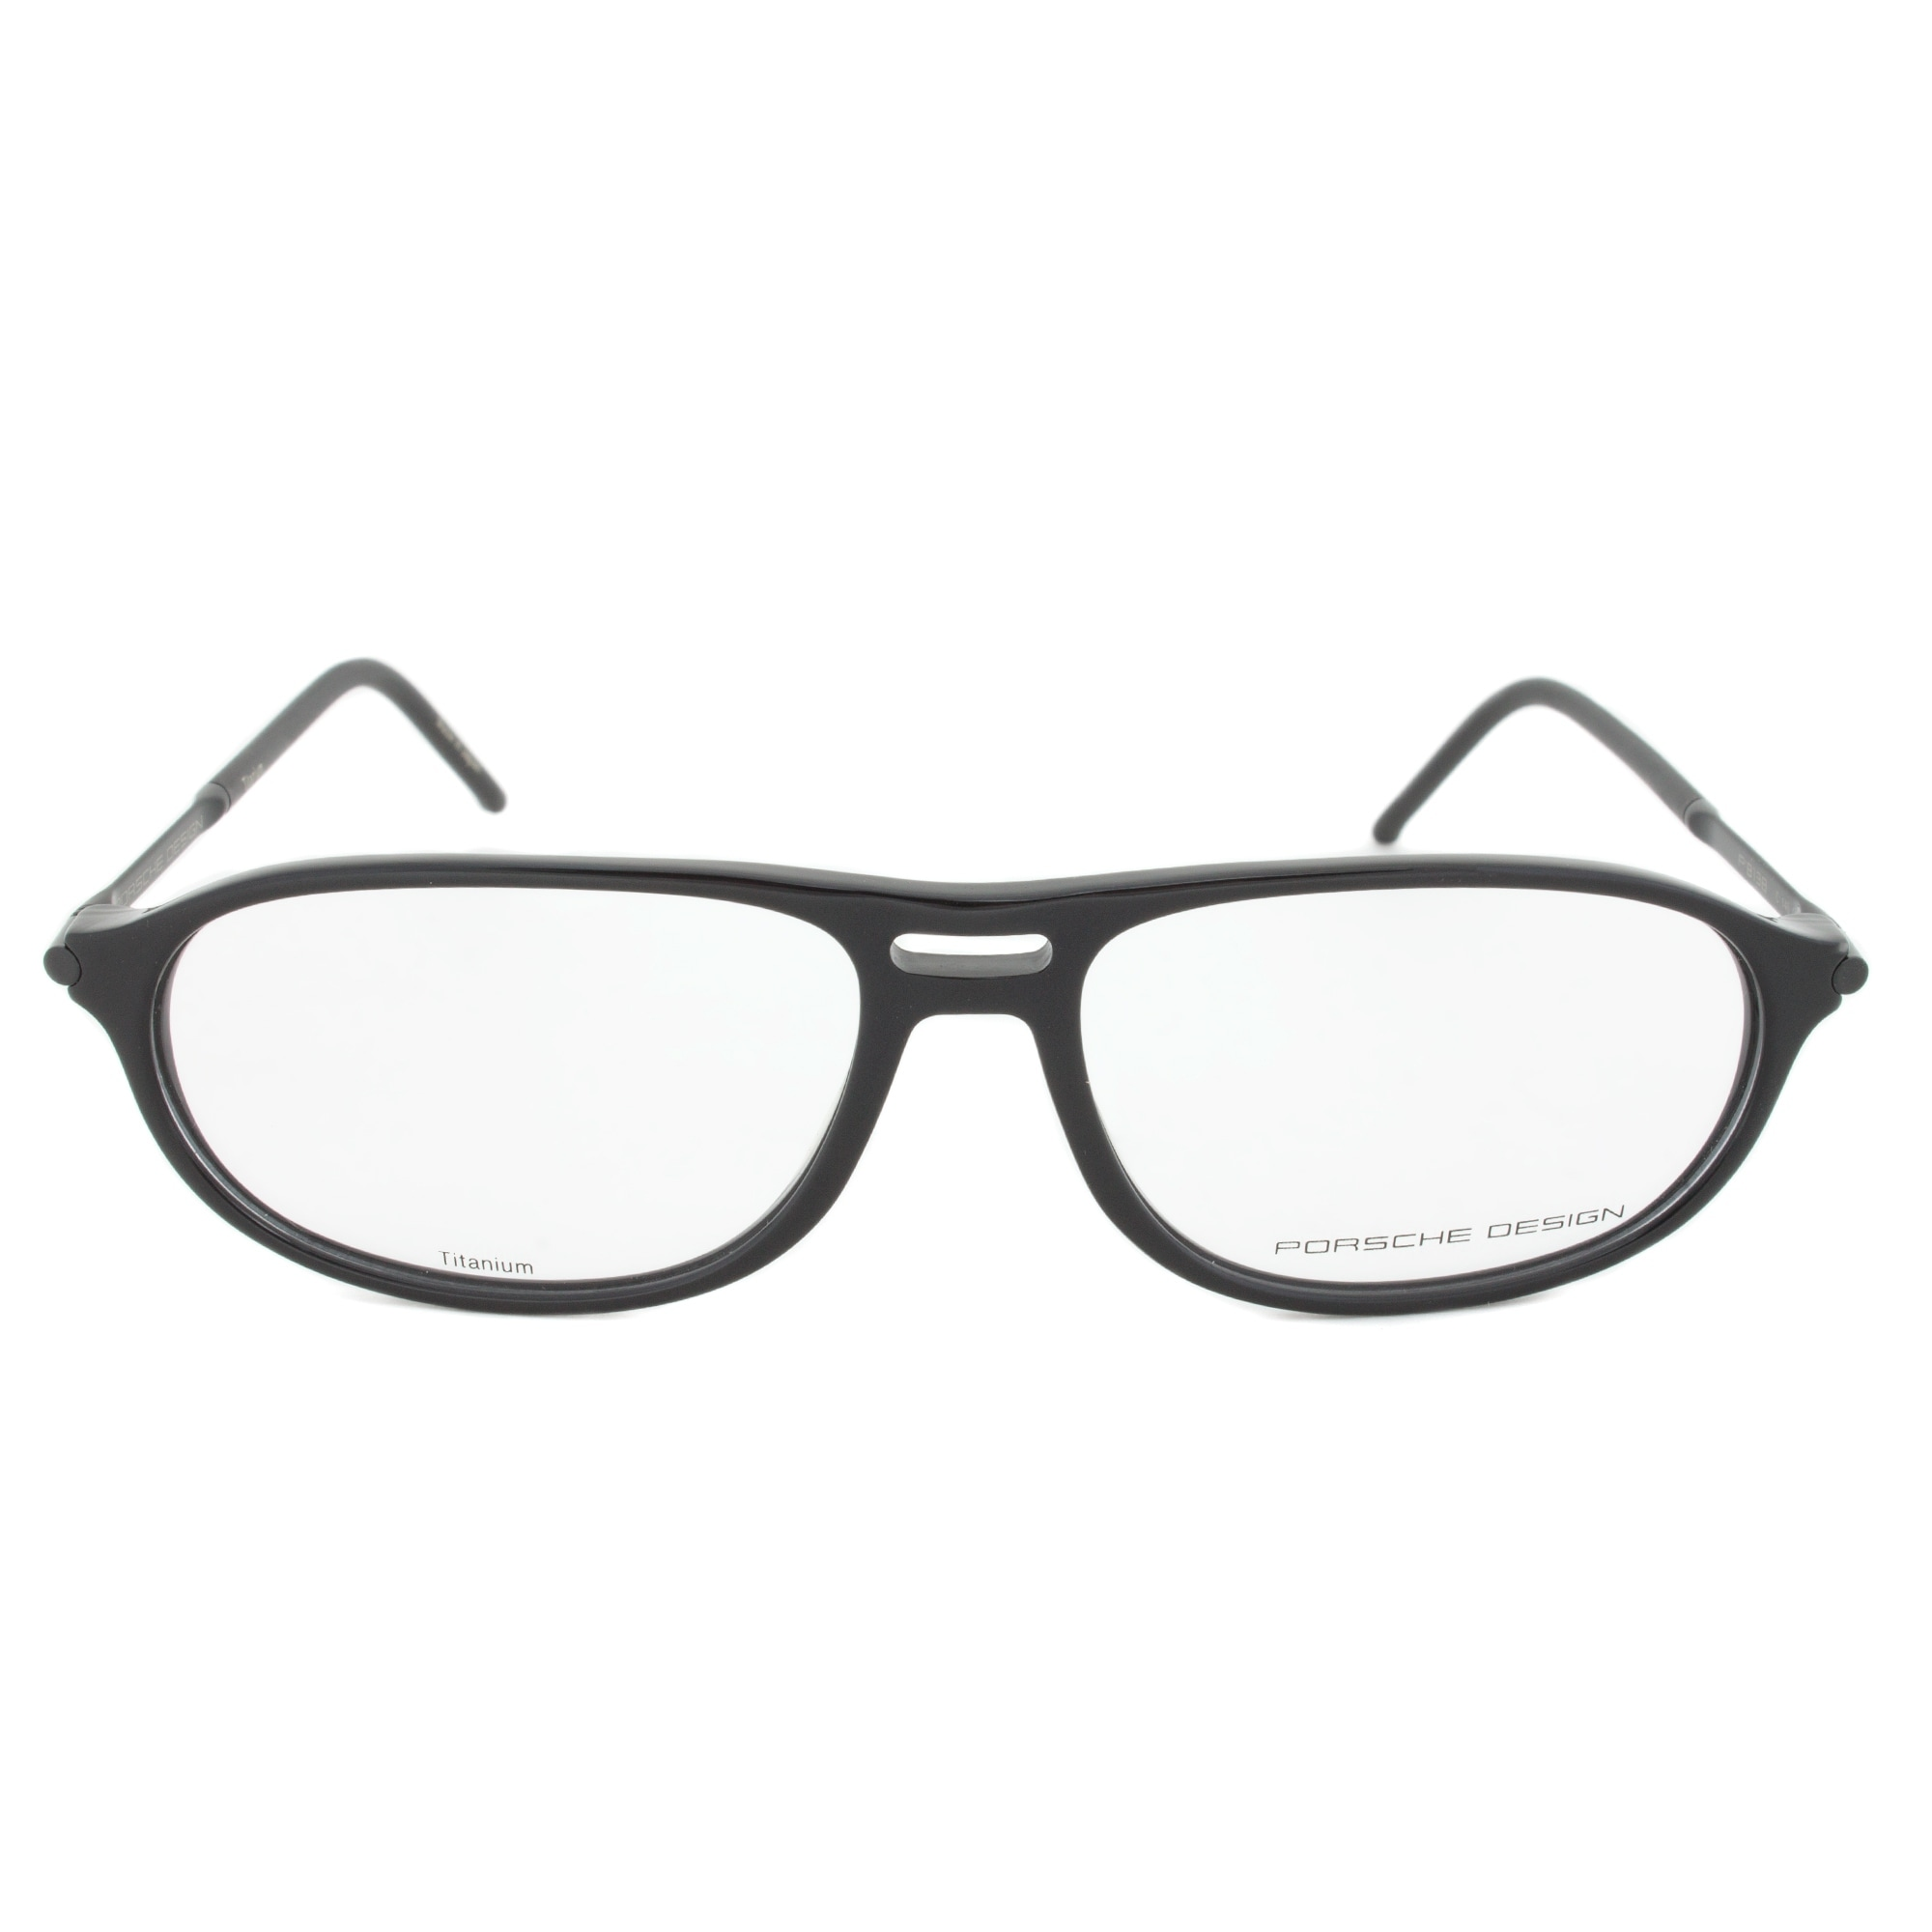 28ecc960bd80 Image Unavailable Source · Shop Porsche Design Porsche Design P8138 C Oval  Black Eyeglass